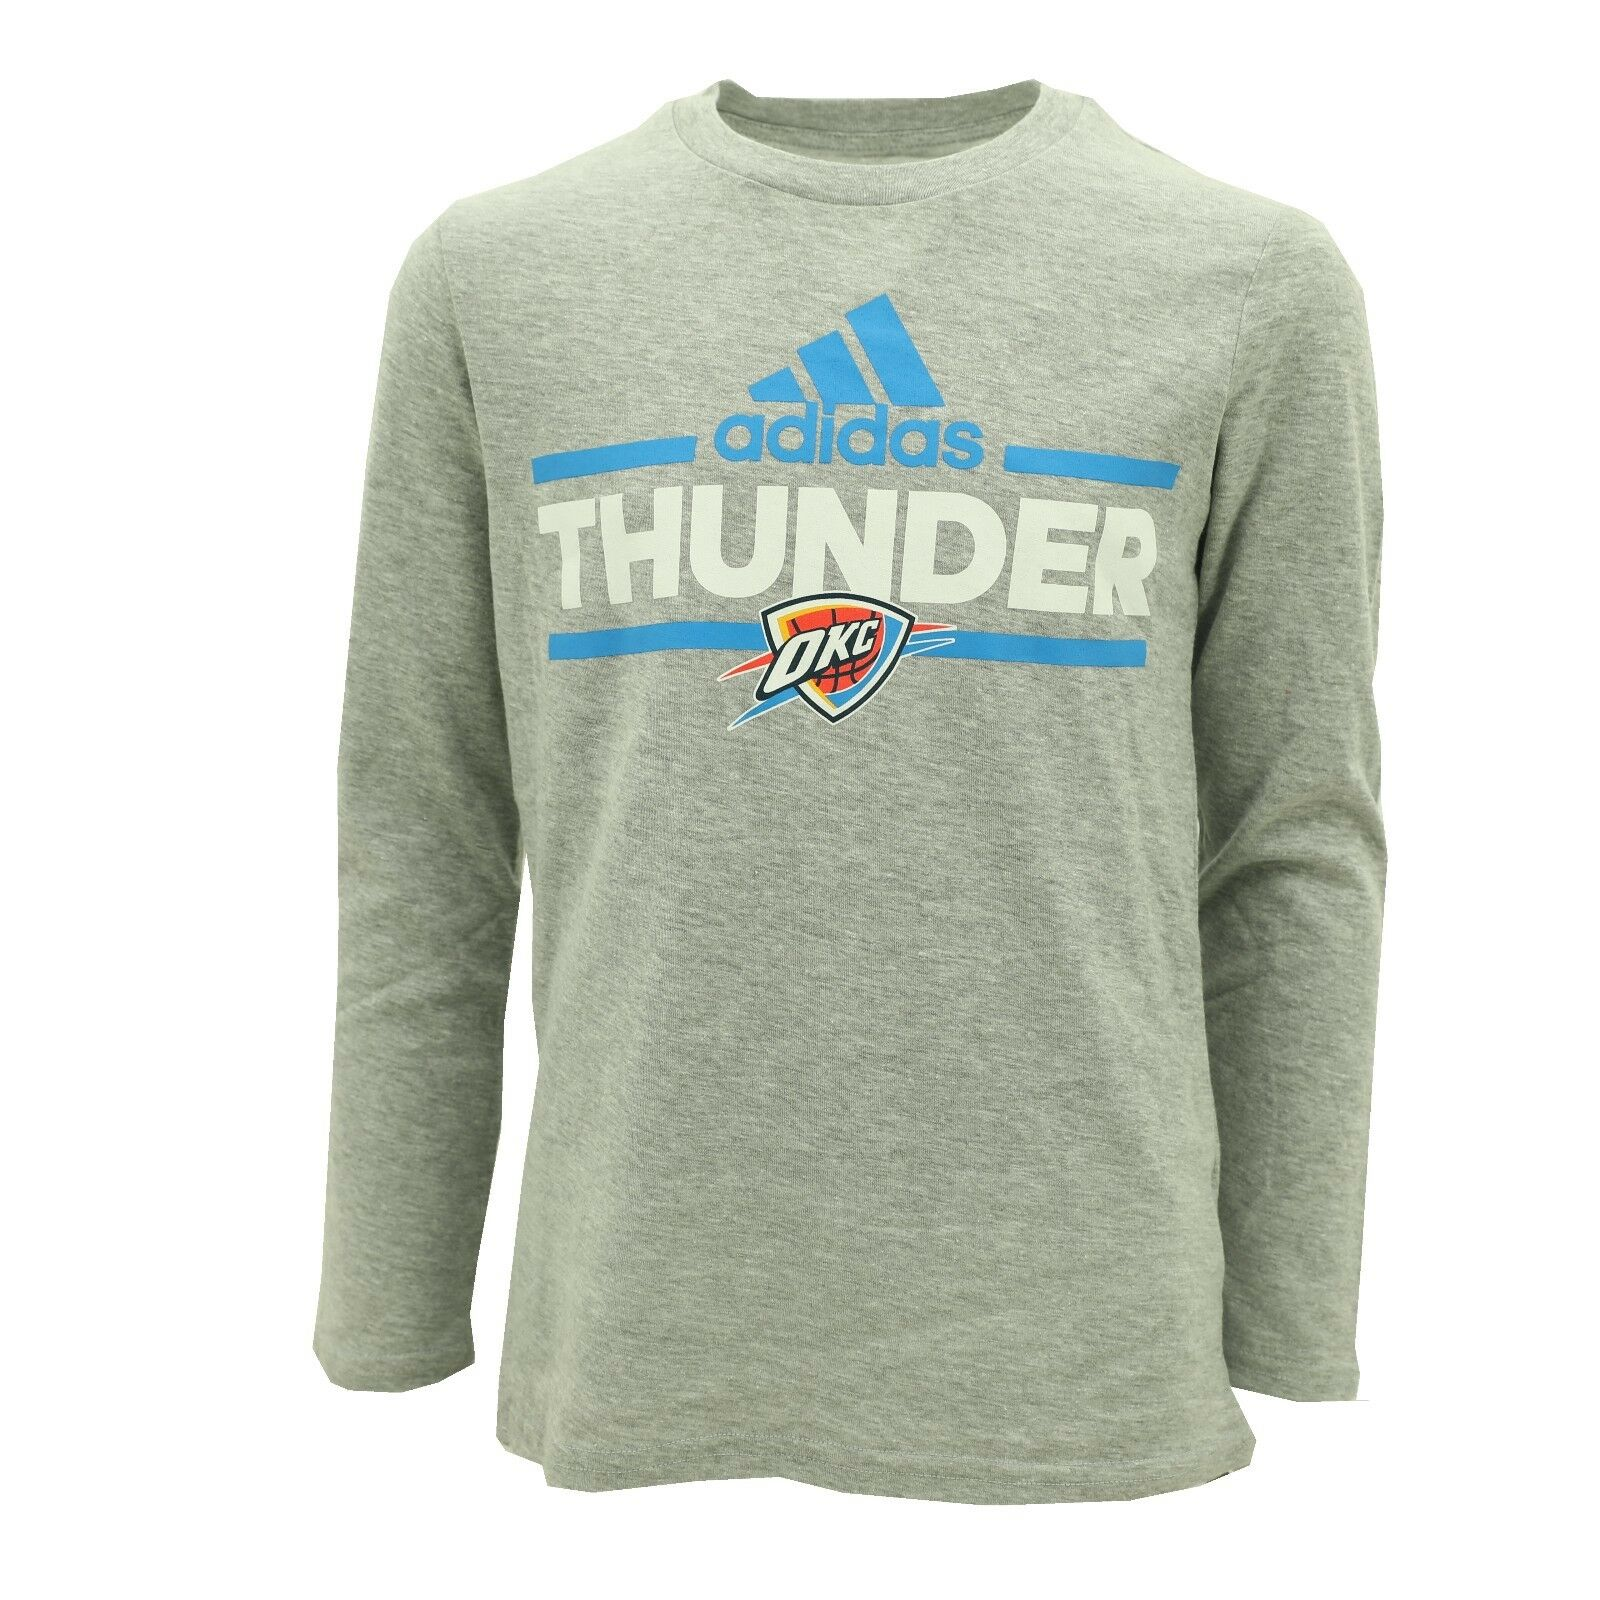 online retailer 4da87 2fcc3 Details about Oklahoma City Thunder Kids Youth Sizes Official NBA Adidas  Long Sleeve Shirt New